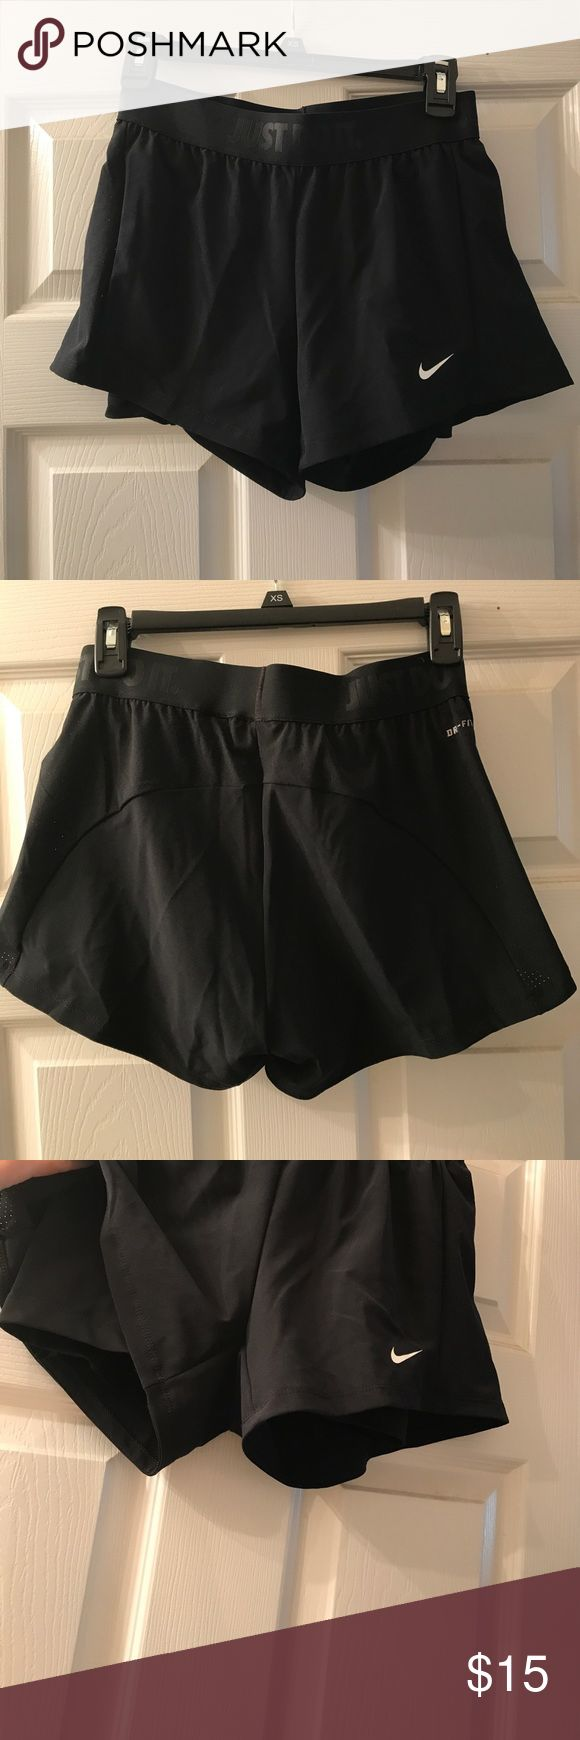 Nike 2-in-1 Women's training shorts These are brand new without tags. Women's Nike 2-in-1 training shorts. They are an XS. There is a black spandex inner liner. Nike Shorts